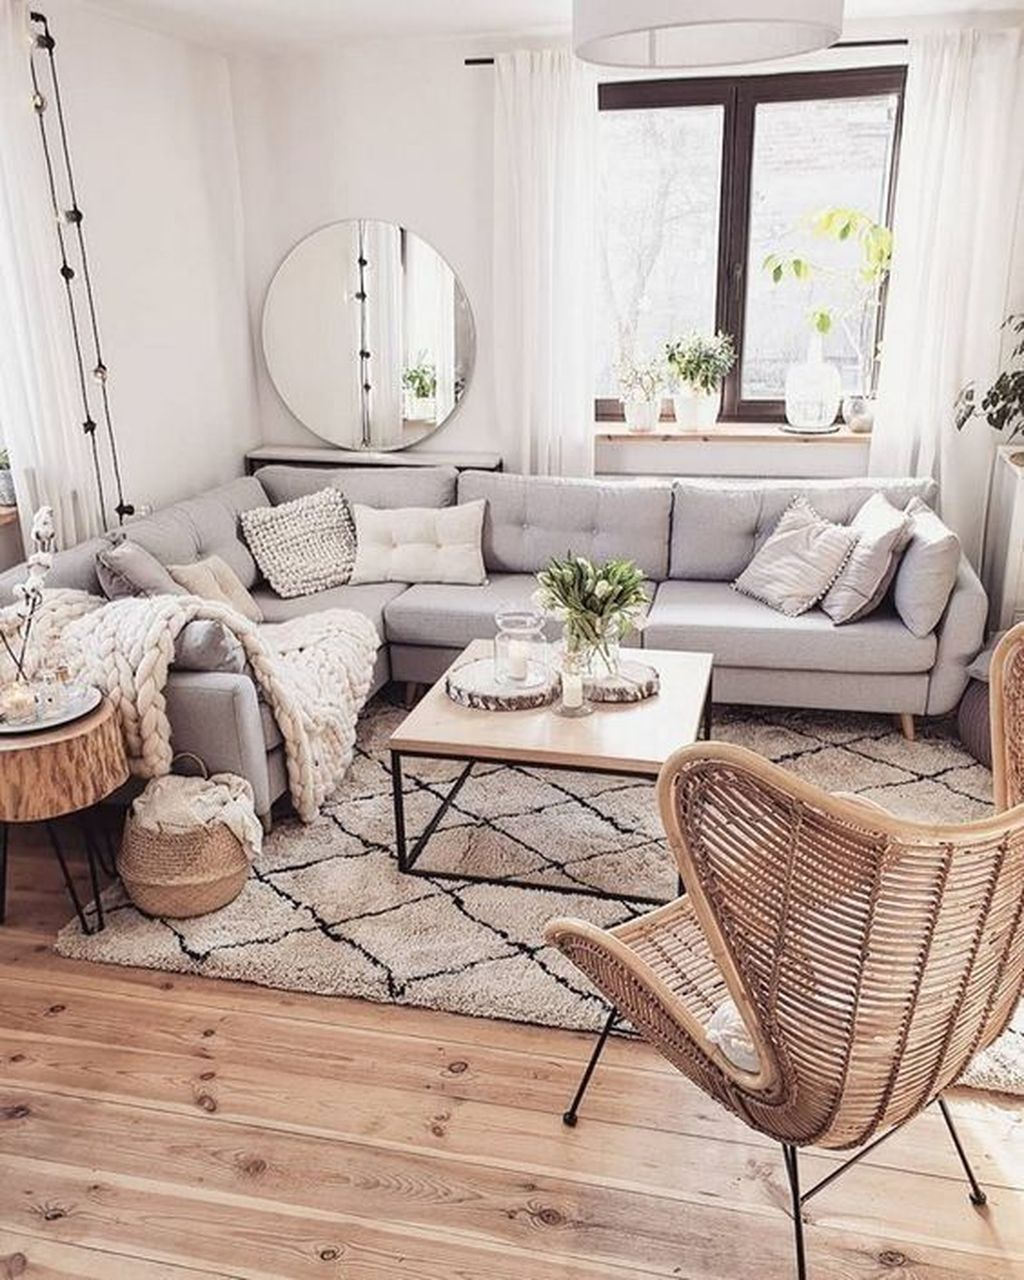 Fascinating Small Apartment Living Room Decor Ideas 02